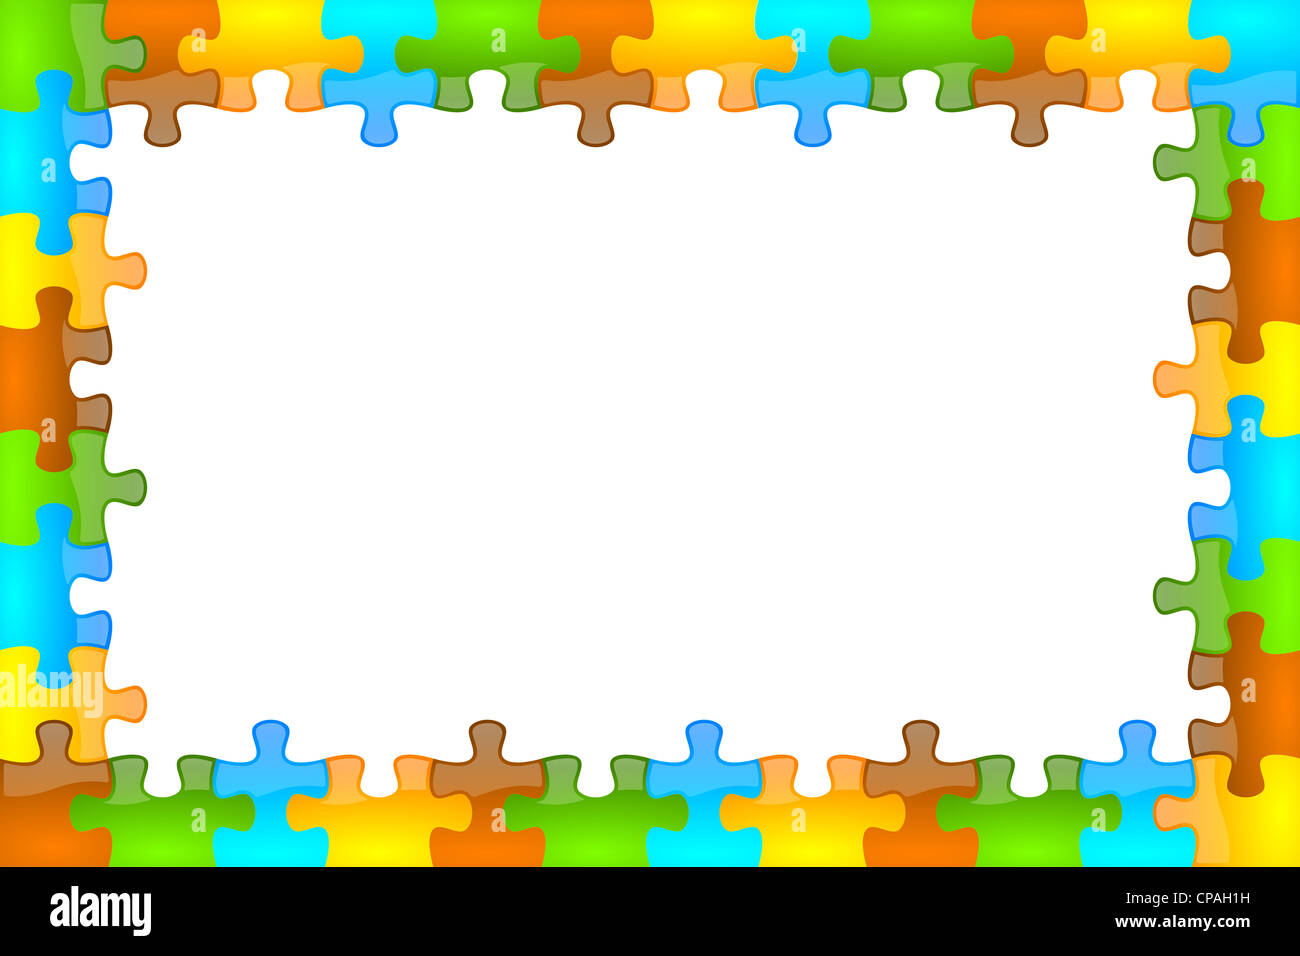 Color Glossy Puzzle Frame Background Stockfotos & Color Glossy ...